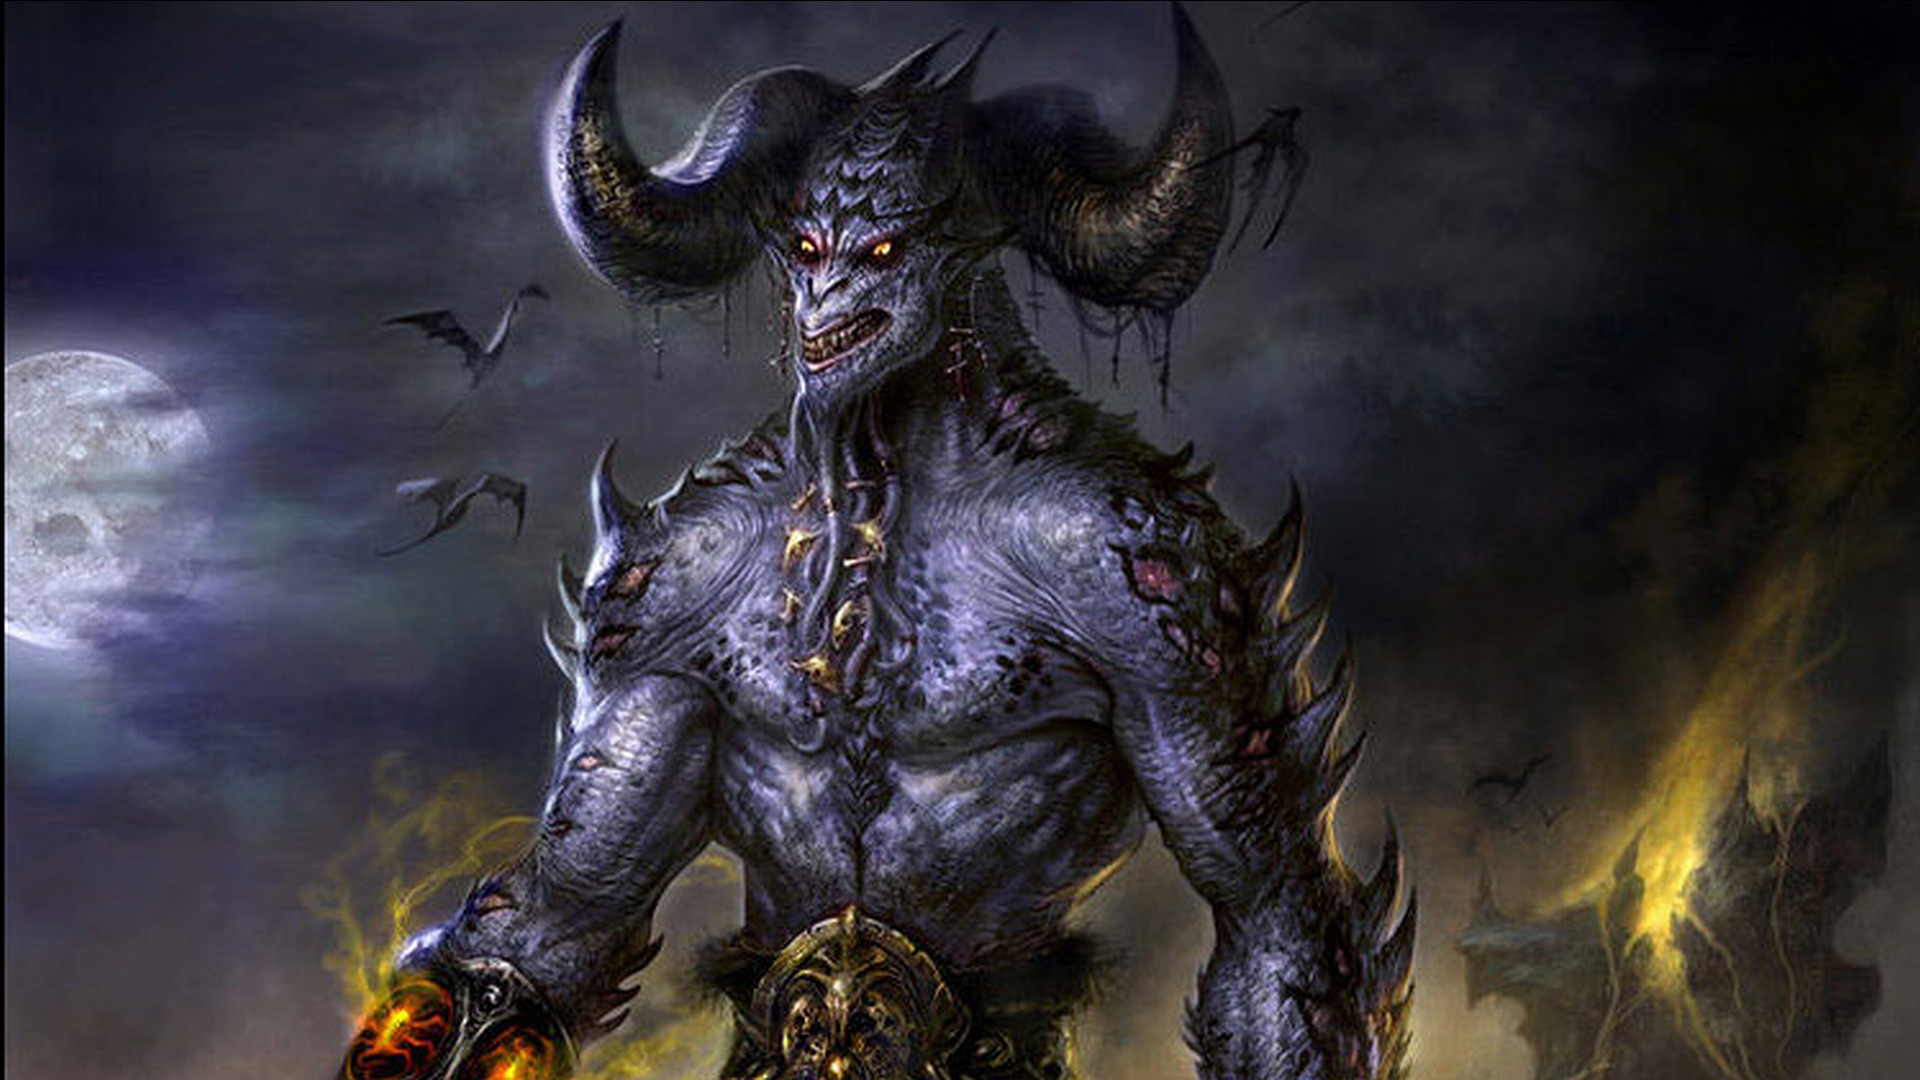 Demon HD wallpapers, Desktop wallpaper - most viewed